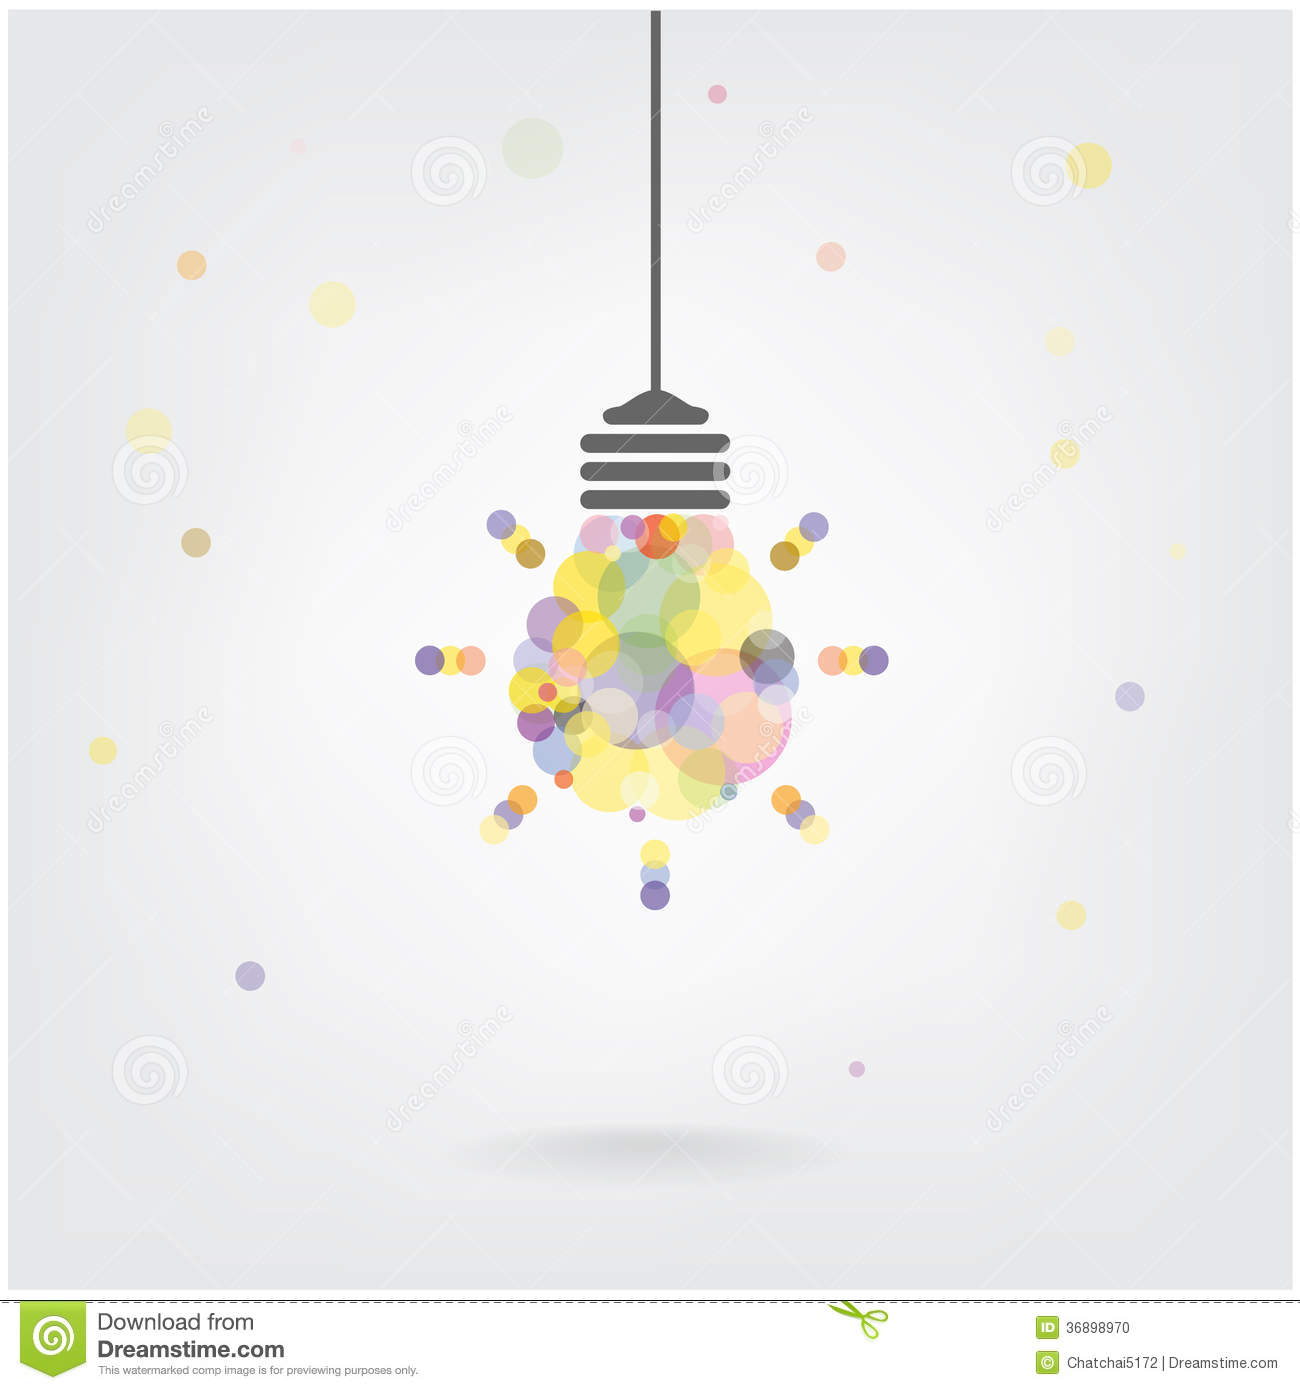 Creative Light Bulb Idea Concept Background Stock Photo ...